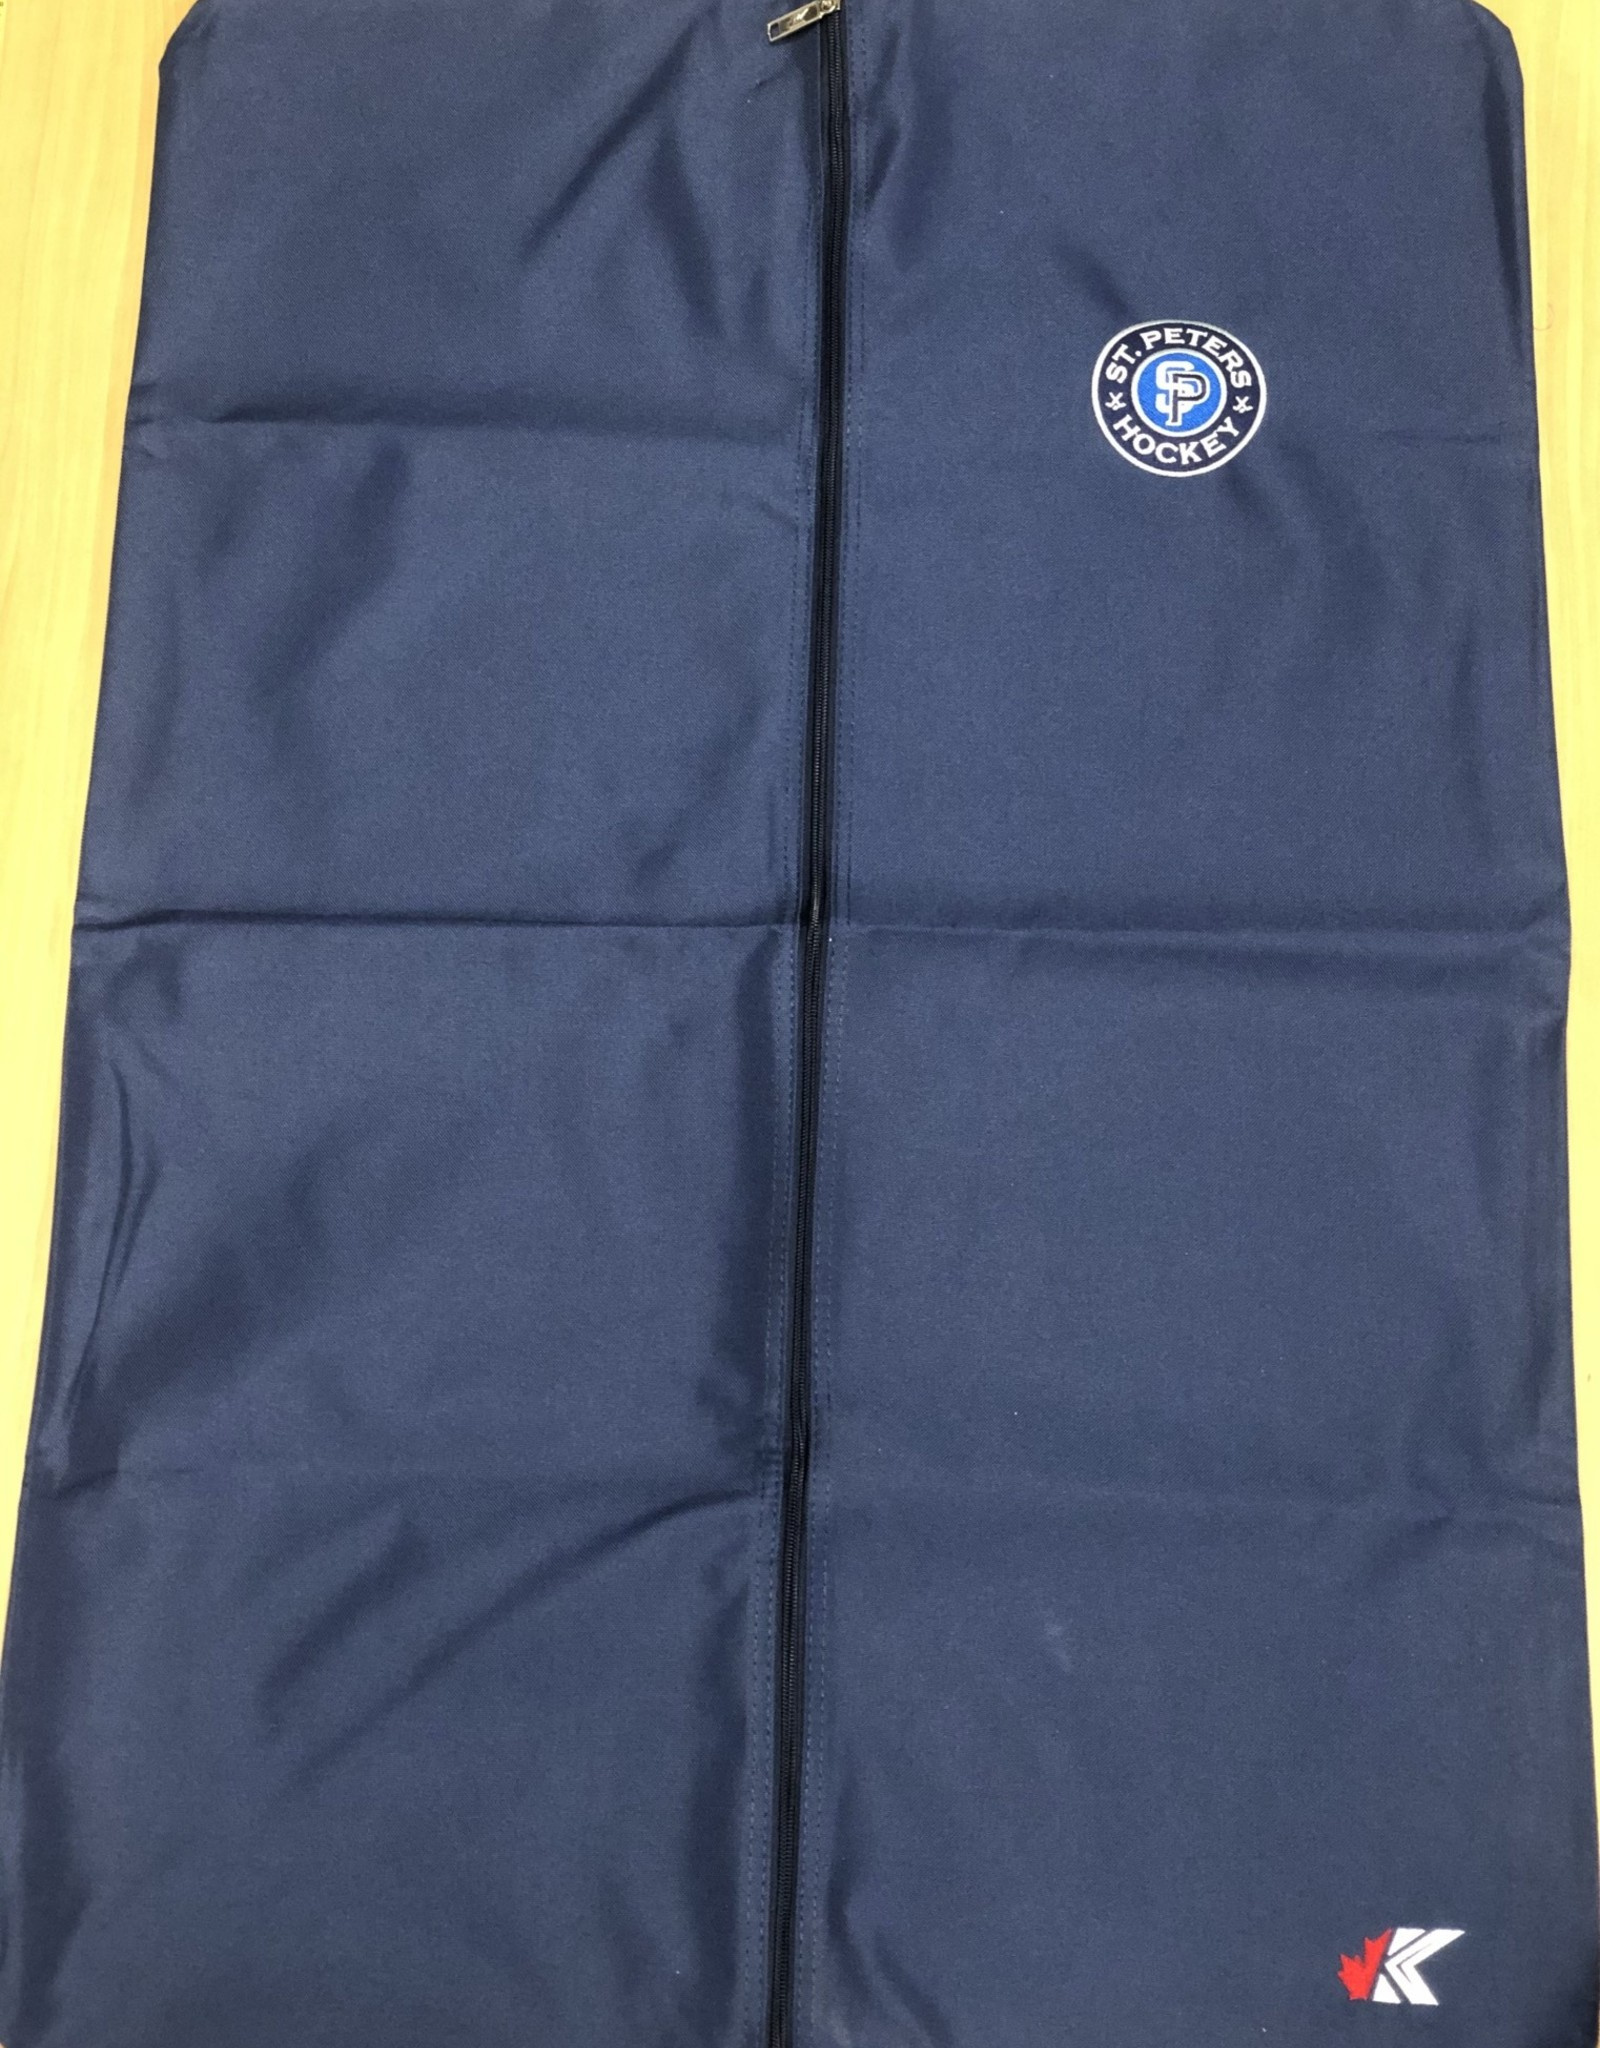 AK STP Garment Bag